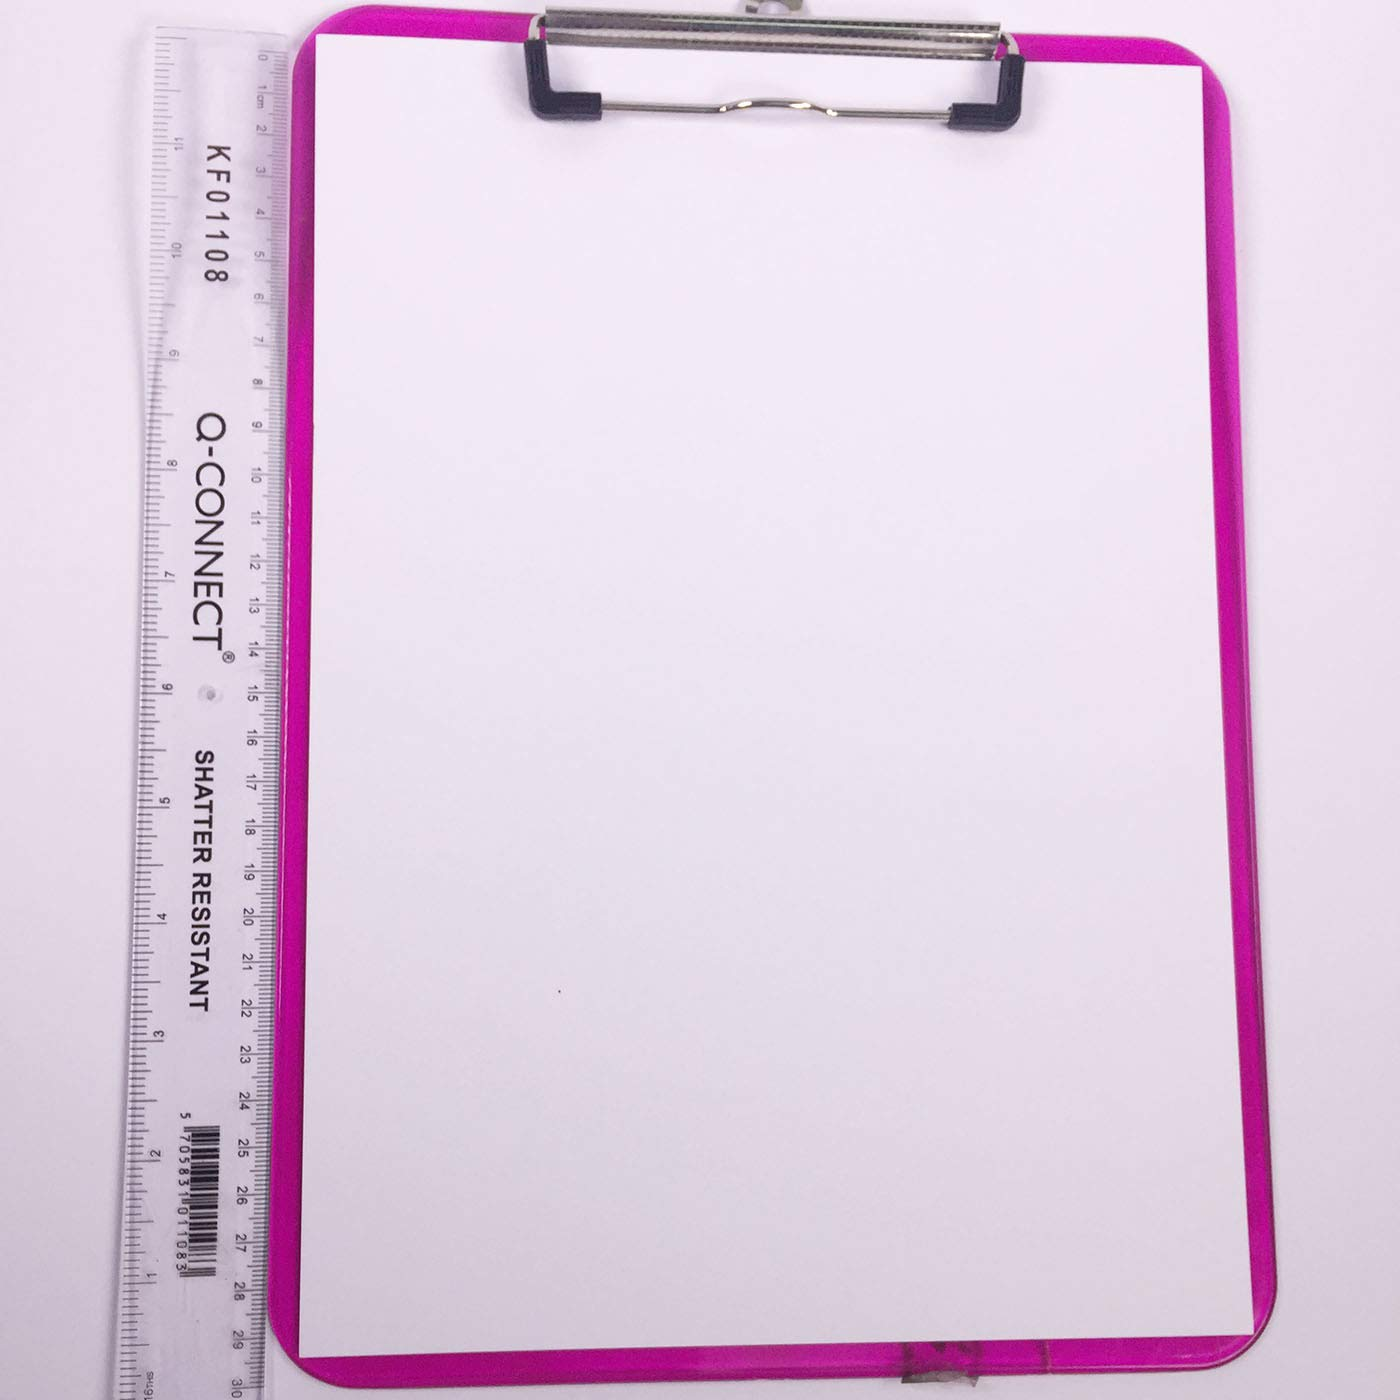 sayletre Clear Silicone Stamp Sheet Printing Scrapbooking Embossing Stamper Transparent Cling Seal for DIY Scrapbook Photo Albums Paper Notebook Card Making Arts Crafts Supplies Key /& Clock